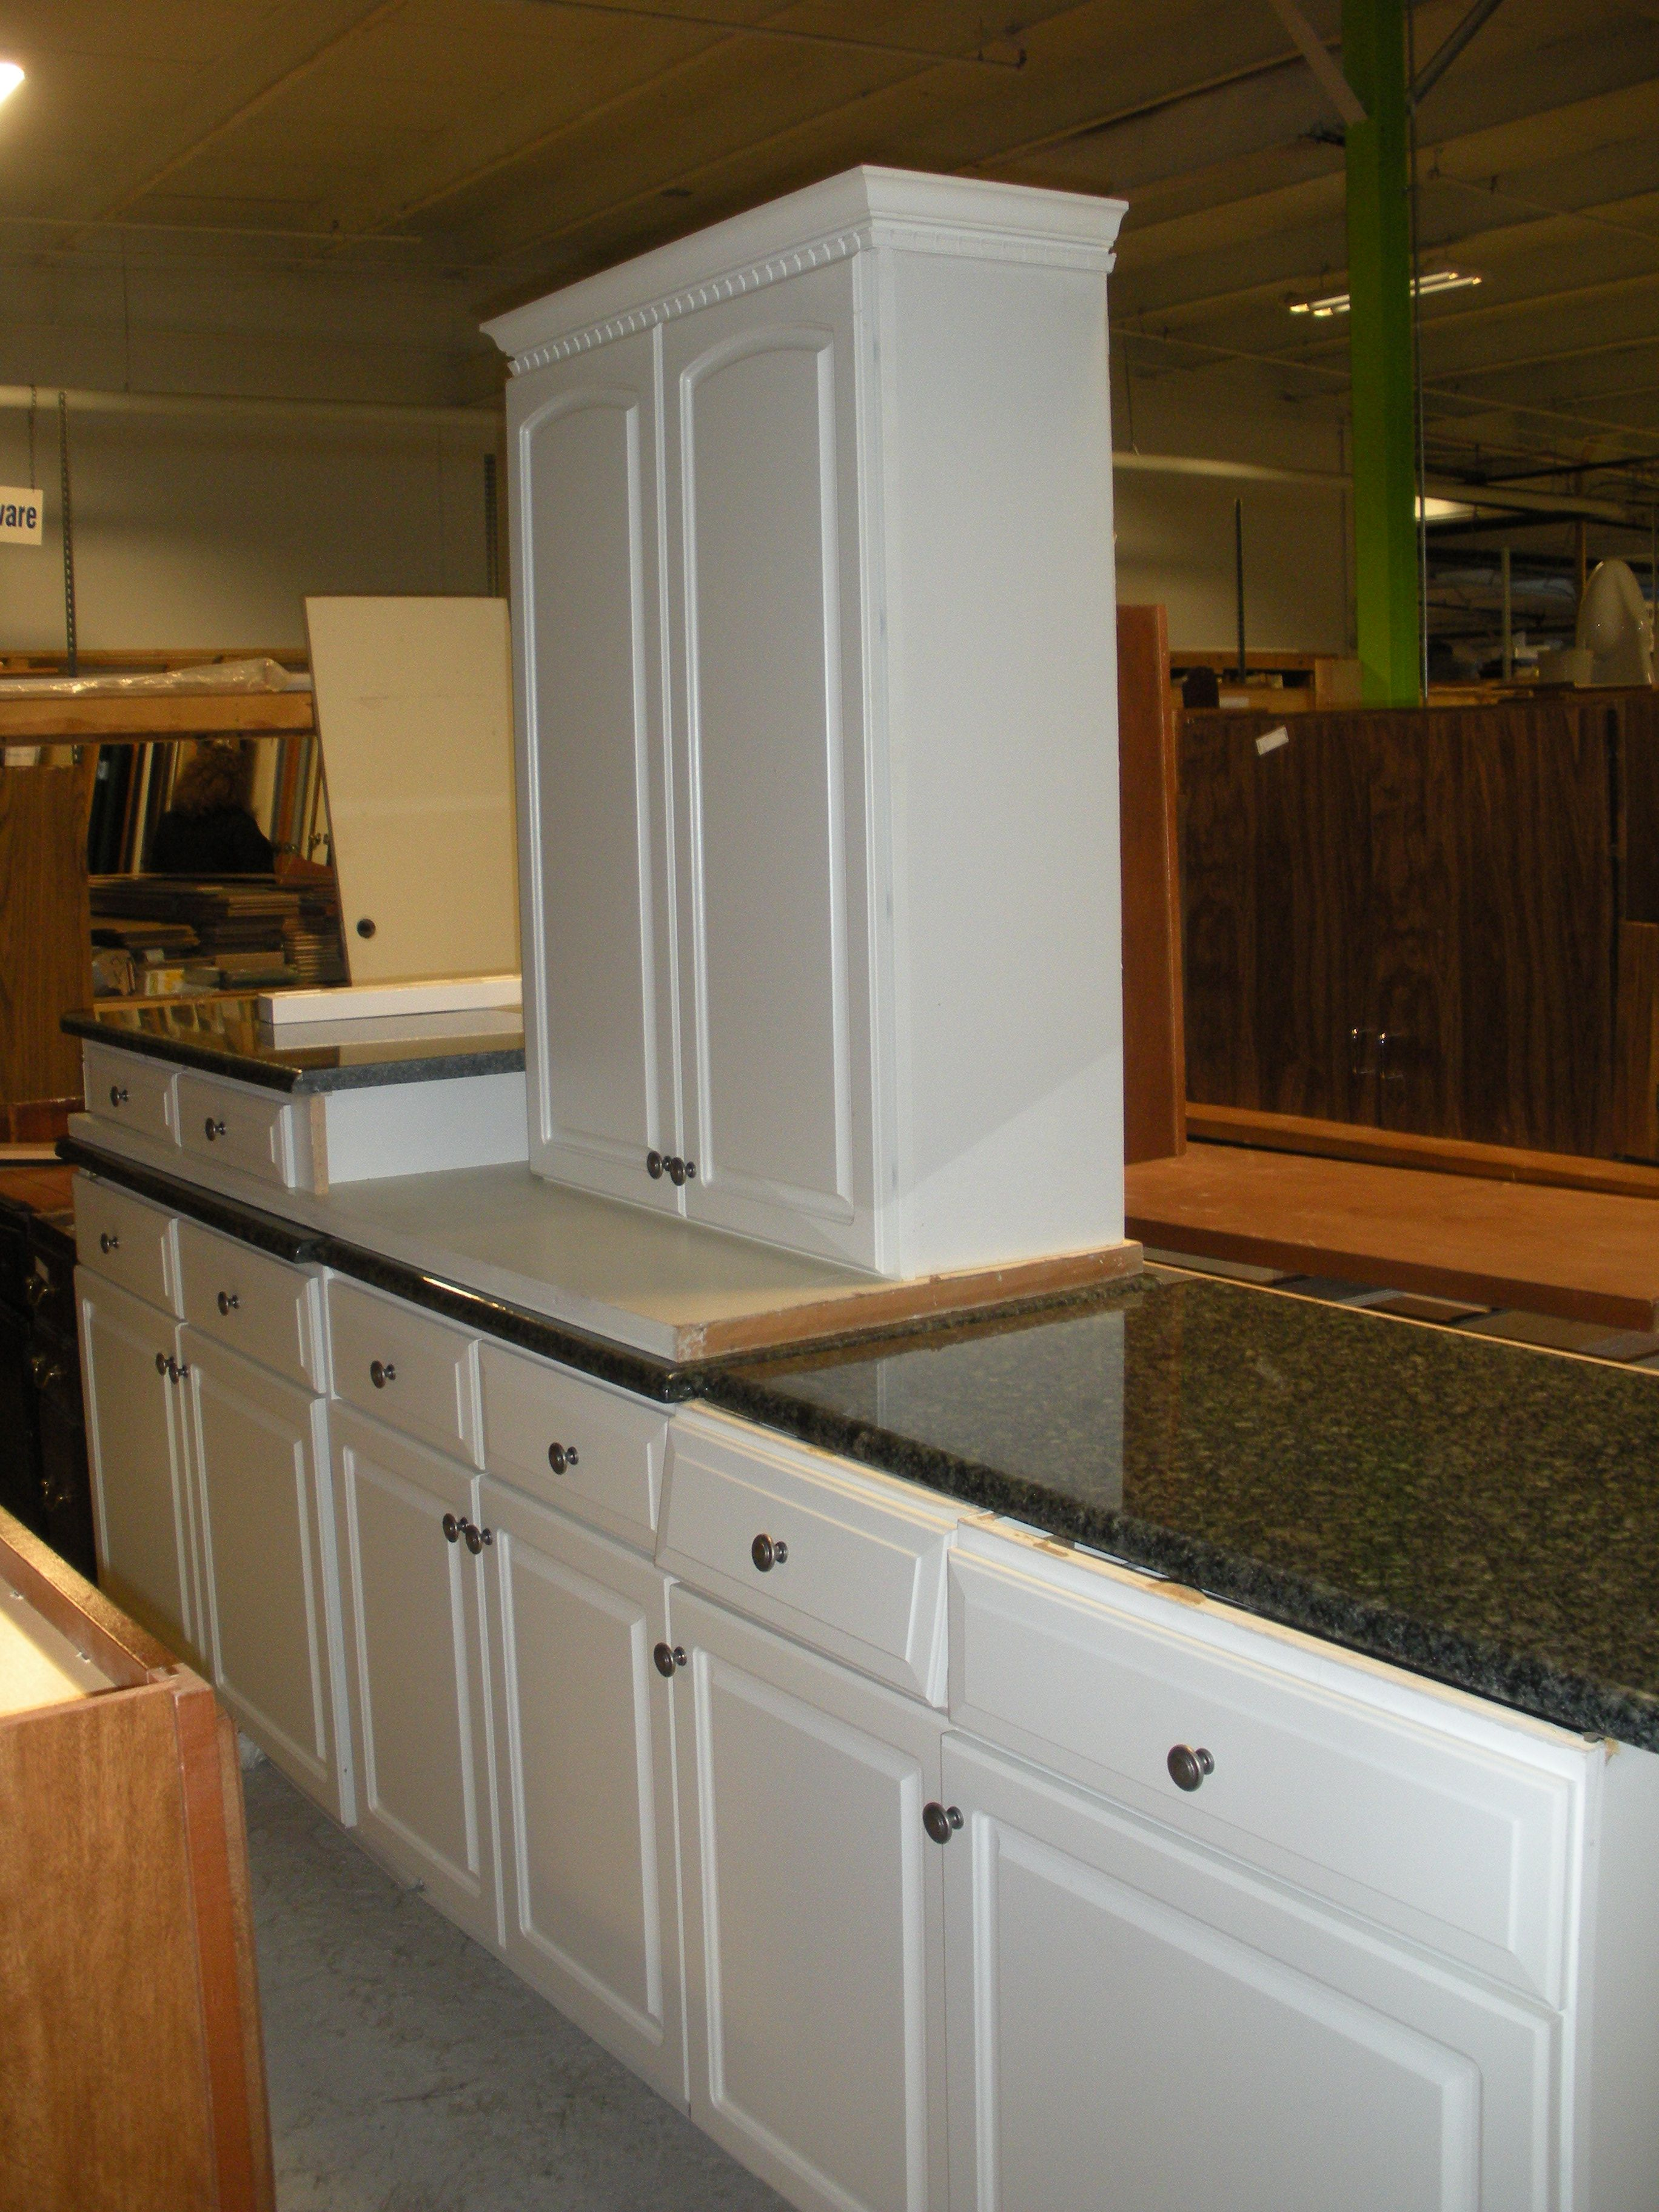 Want To Remodel Your Kitchen Stop In And See What We Have In Stock Habitat Bucks Restore In Chalfont Pa Www Habitatbucks Habitat Restore Chalfont Kitchen